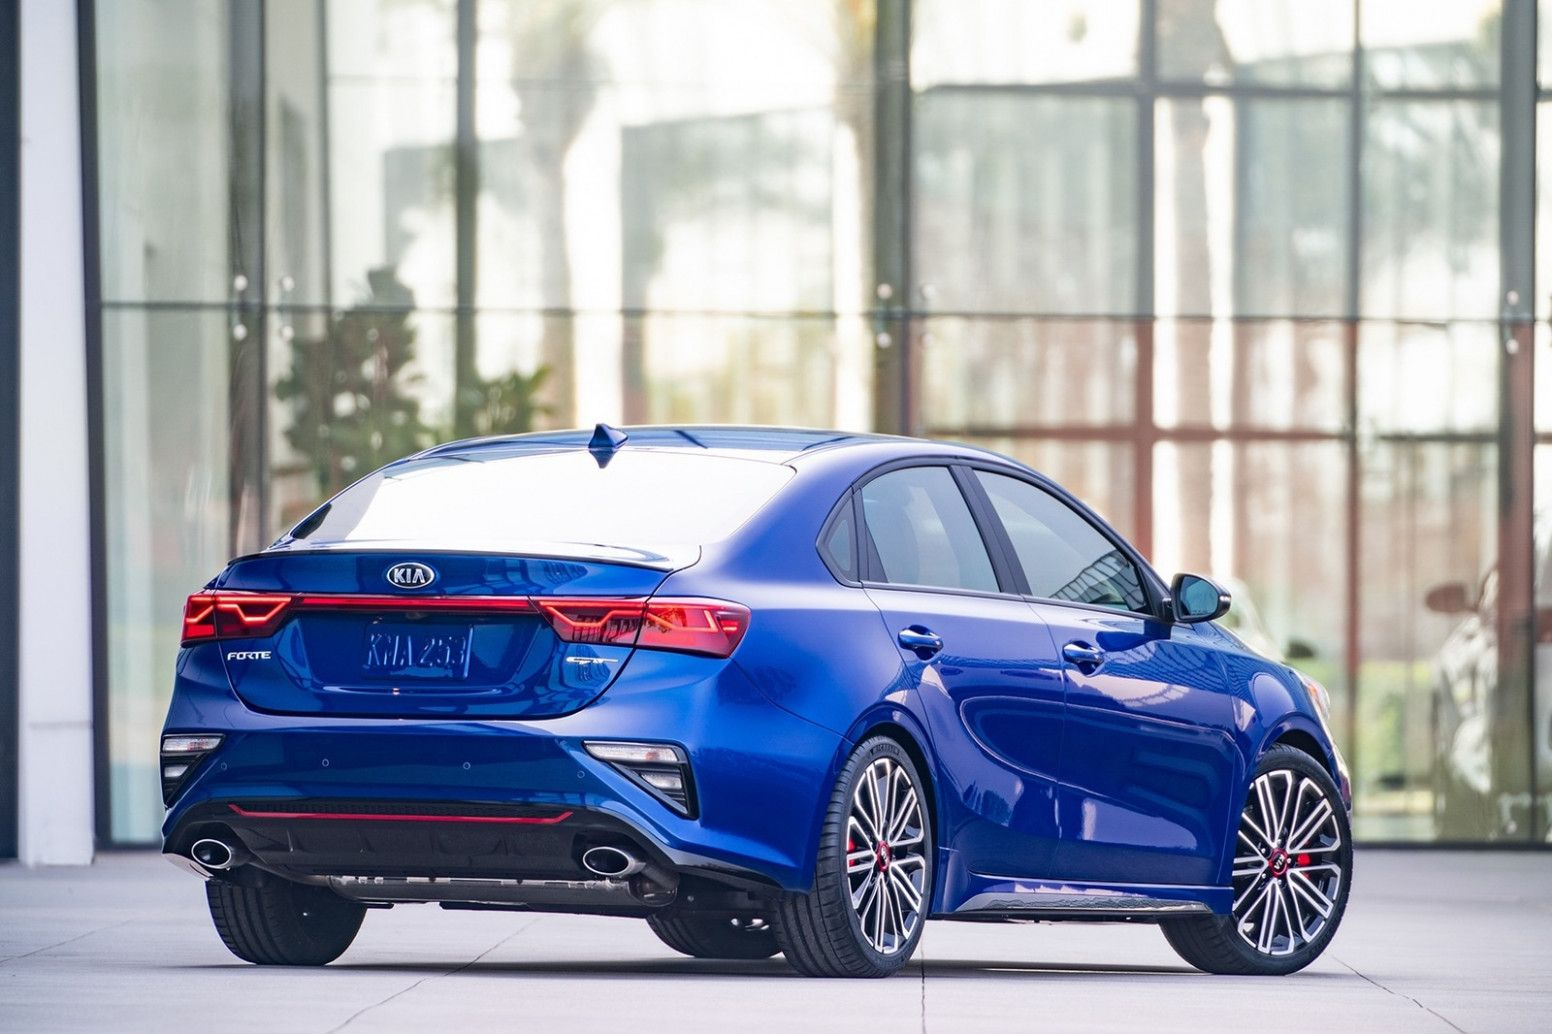 2020 Kia Forte Koup Turbo in 2020 Kia forte, Kia, Hatchback